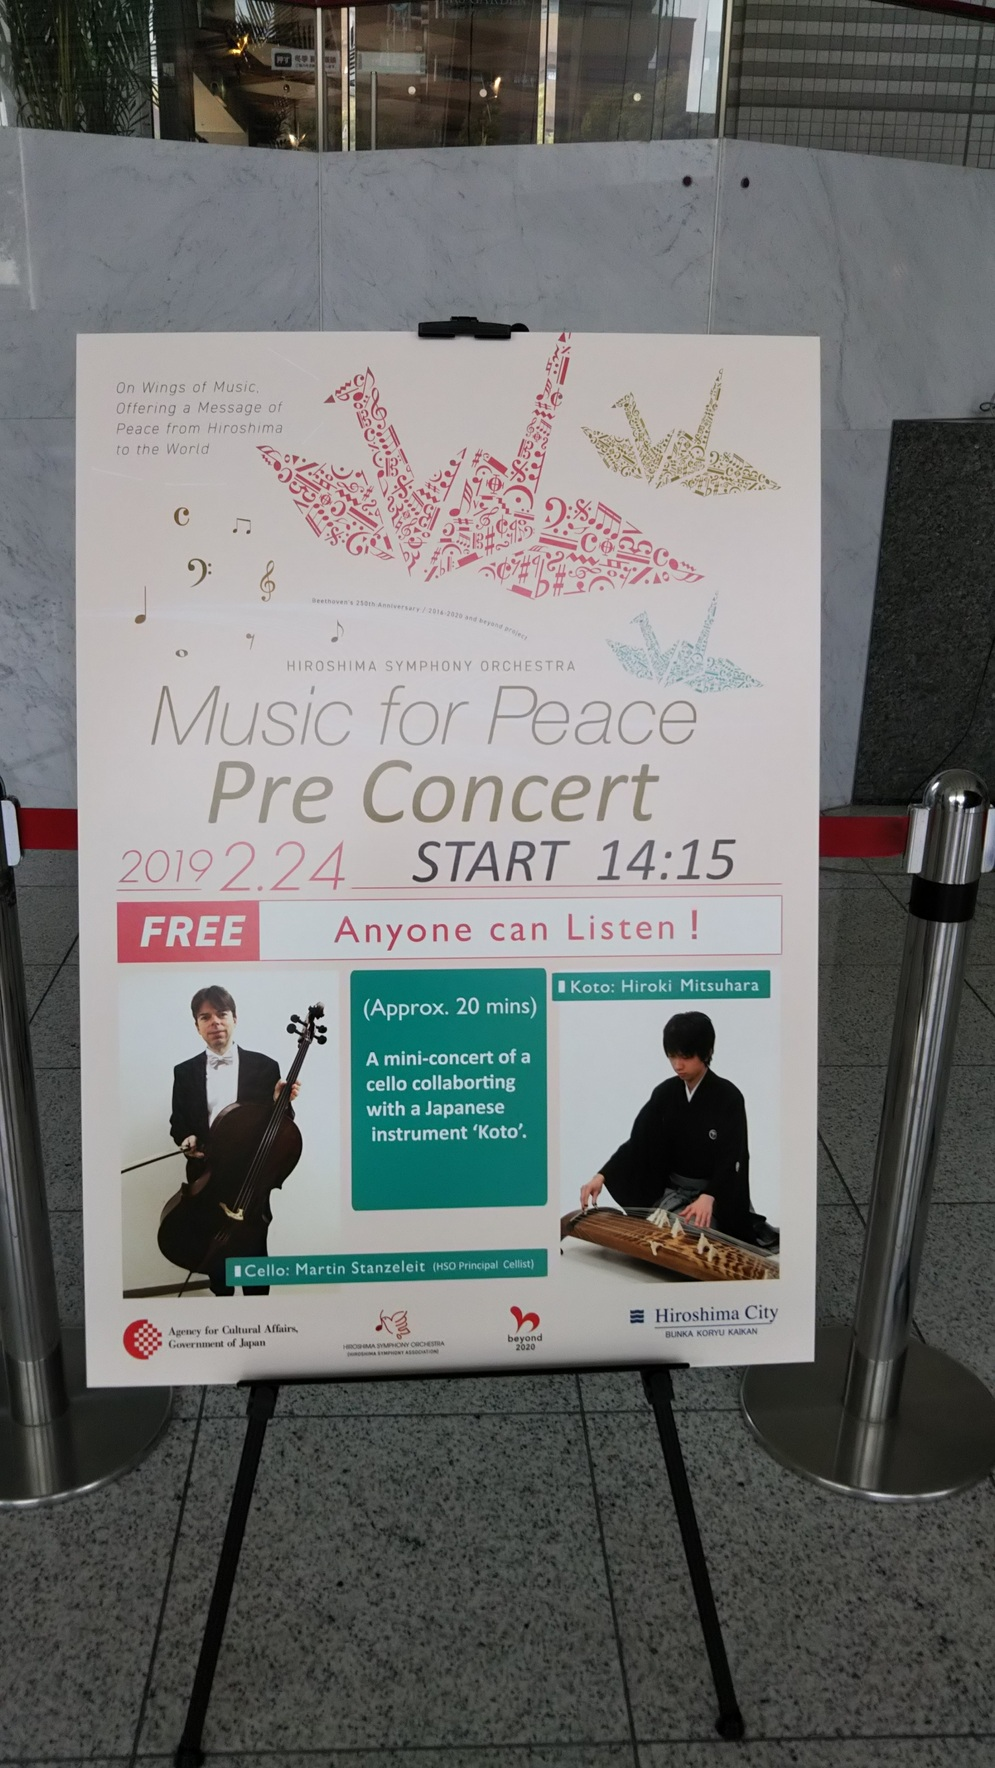 Music for Peace Concert プレコンサート